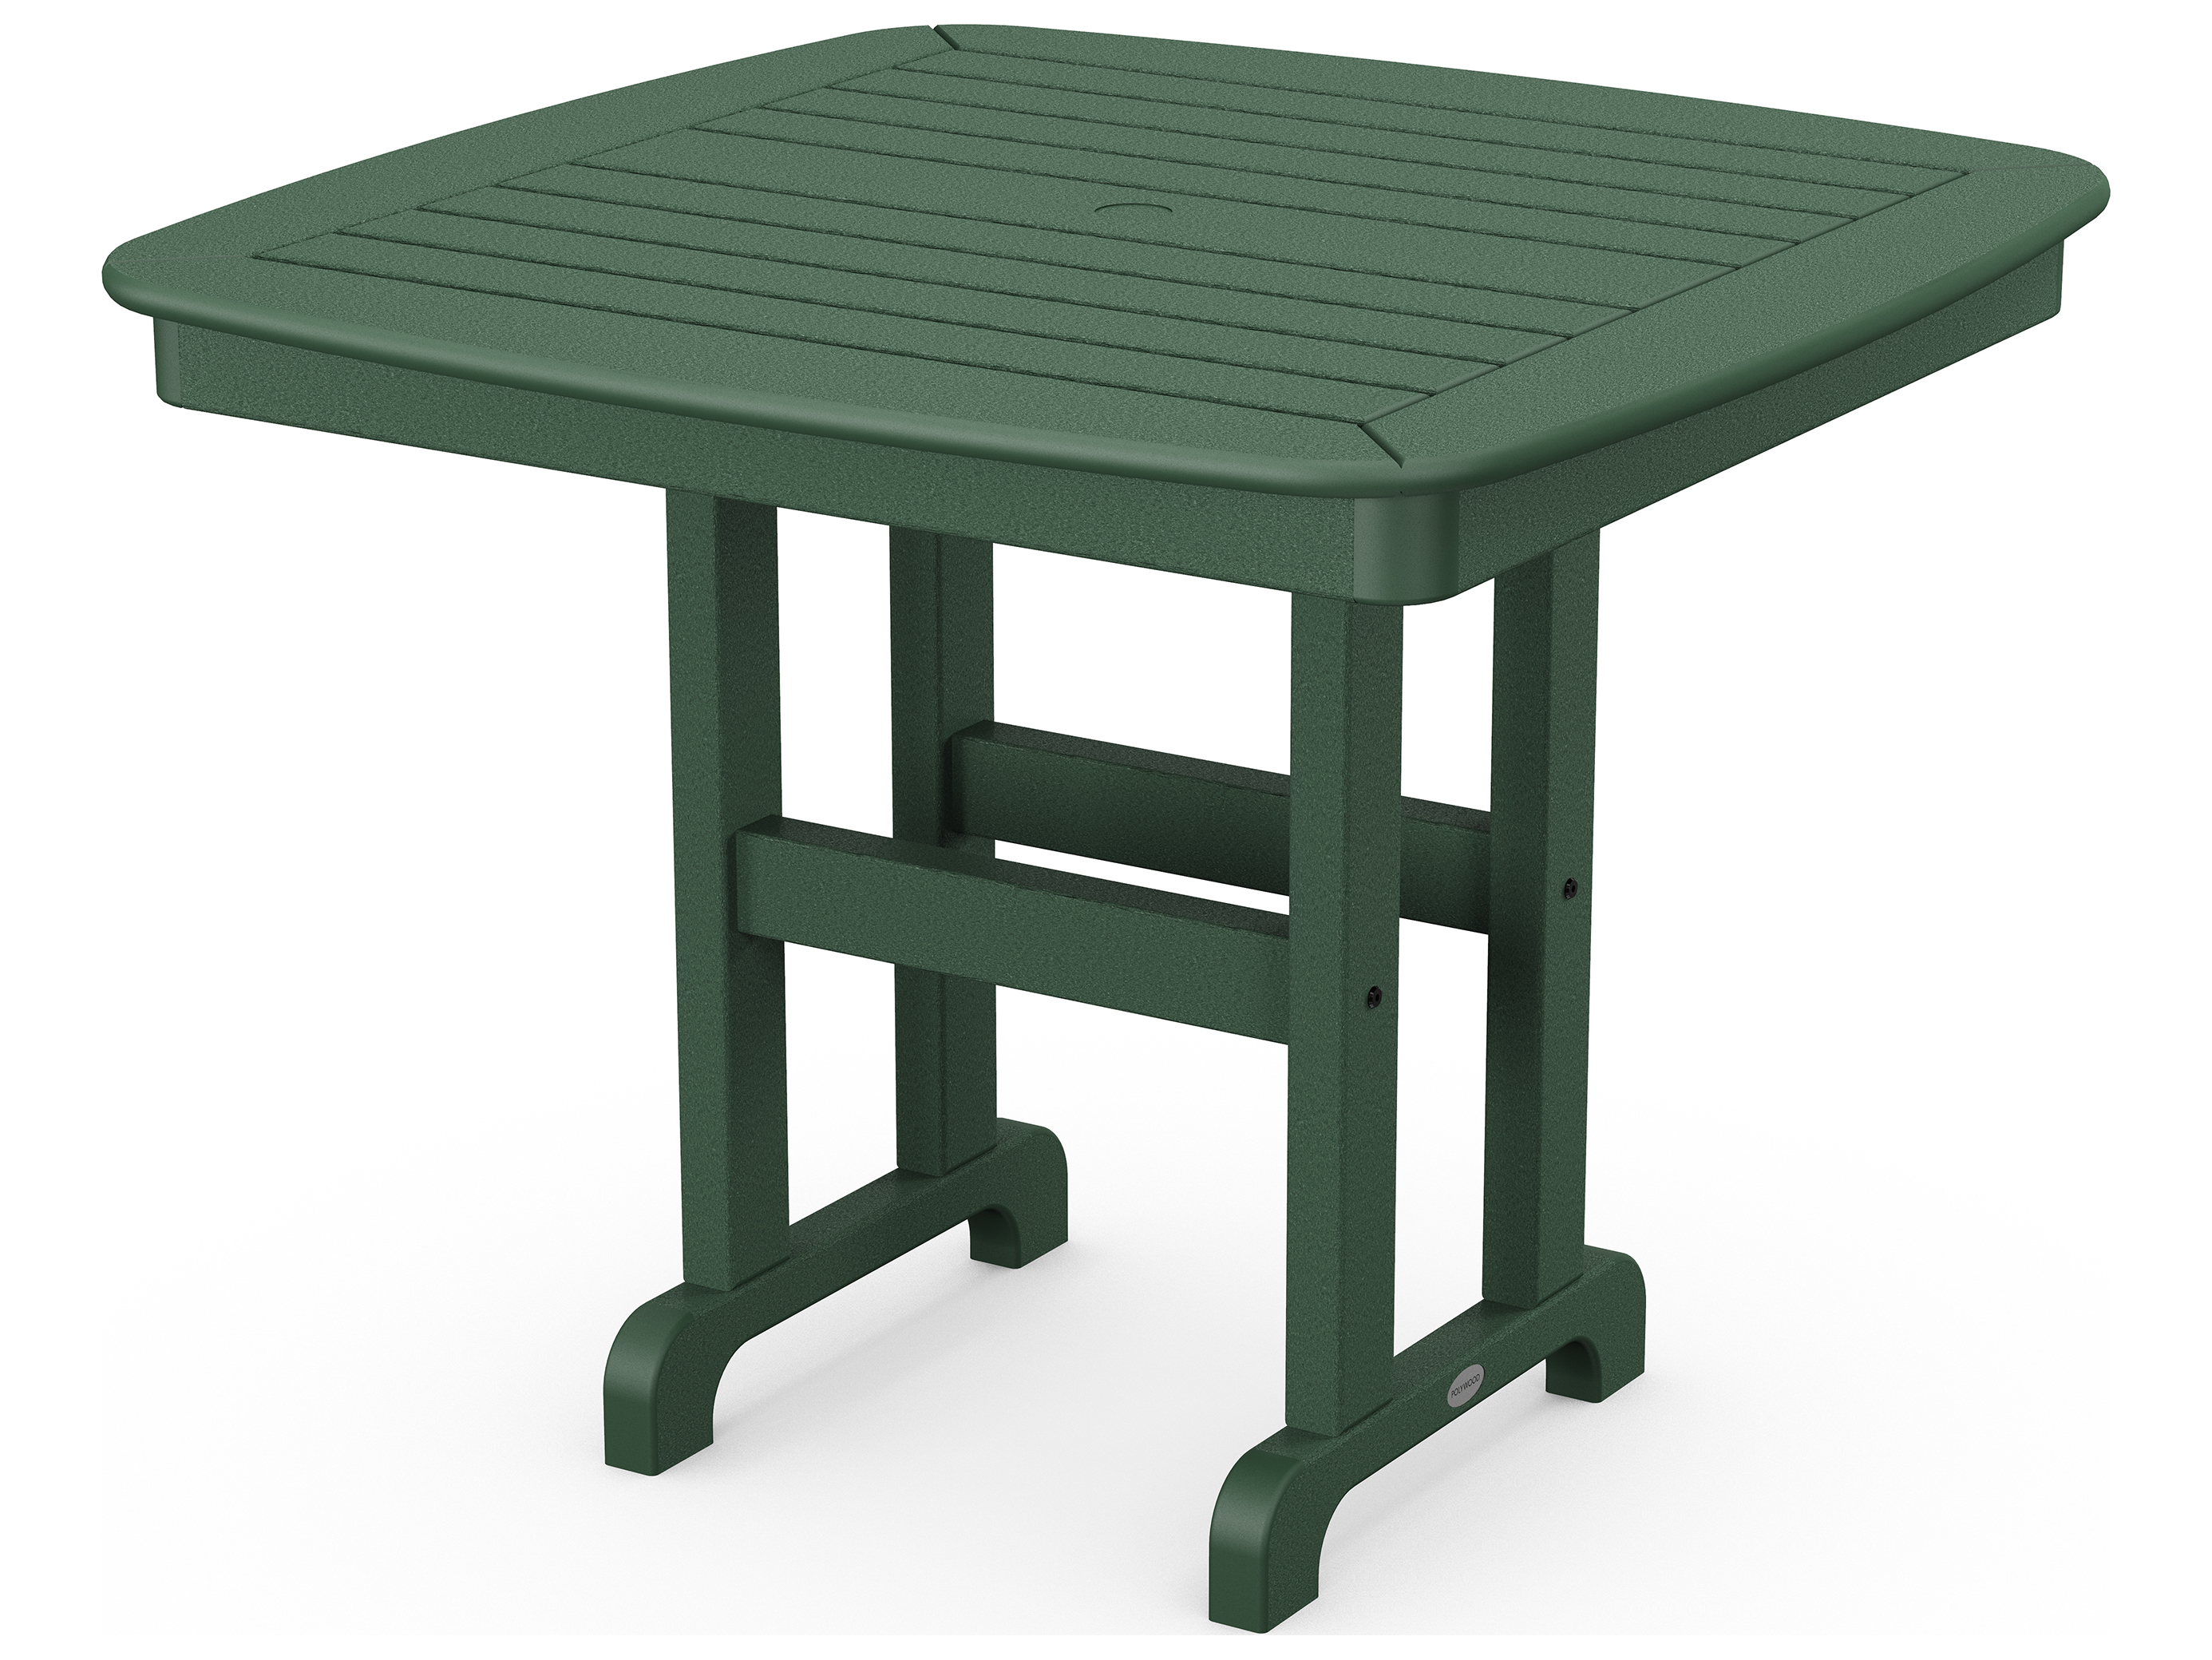 Polywood 174 Nautical Recycled Plastic 37 Square Dining Table